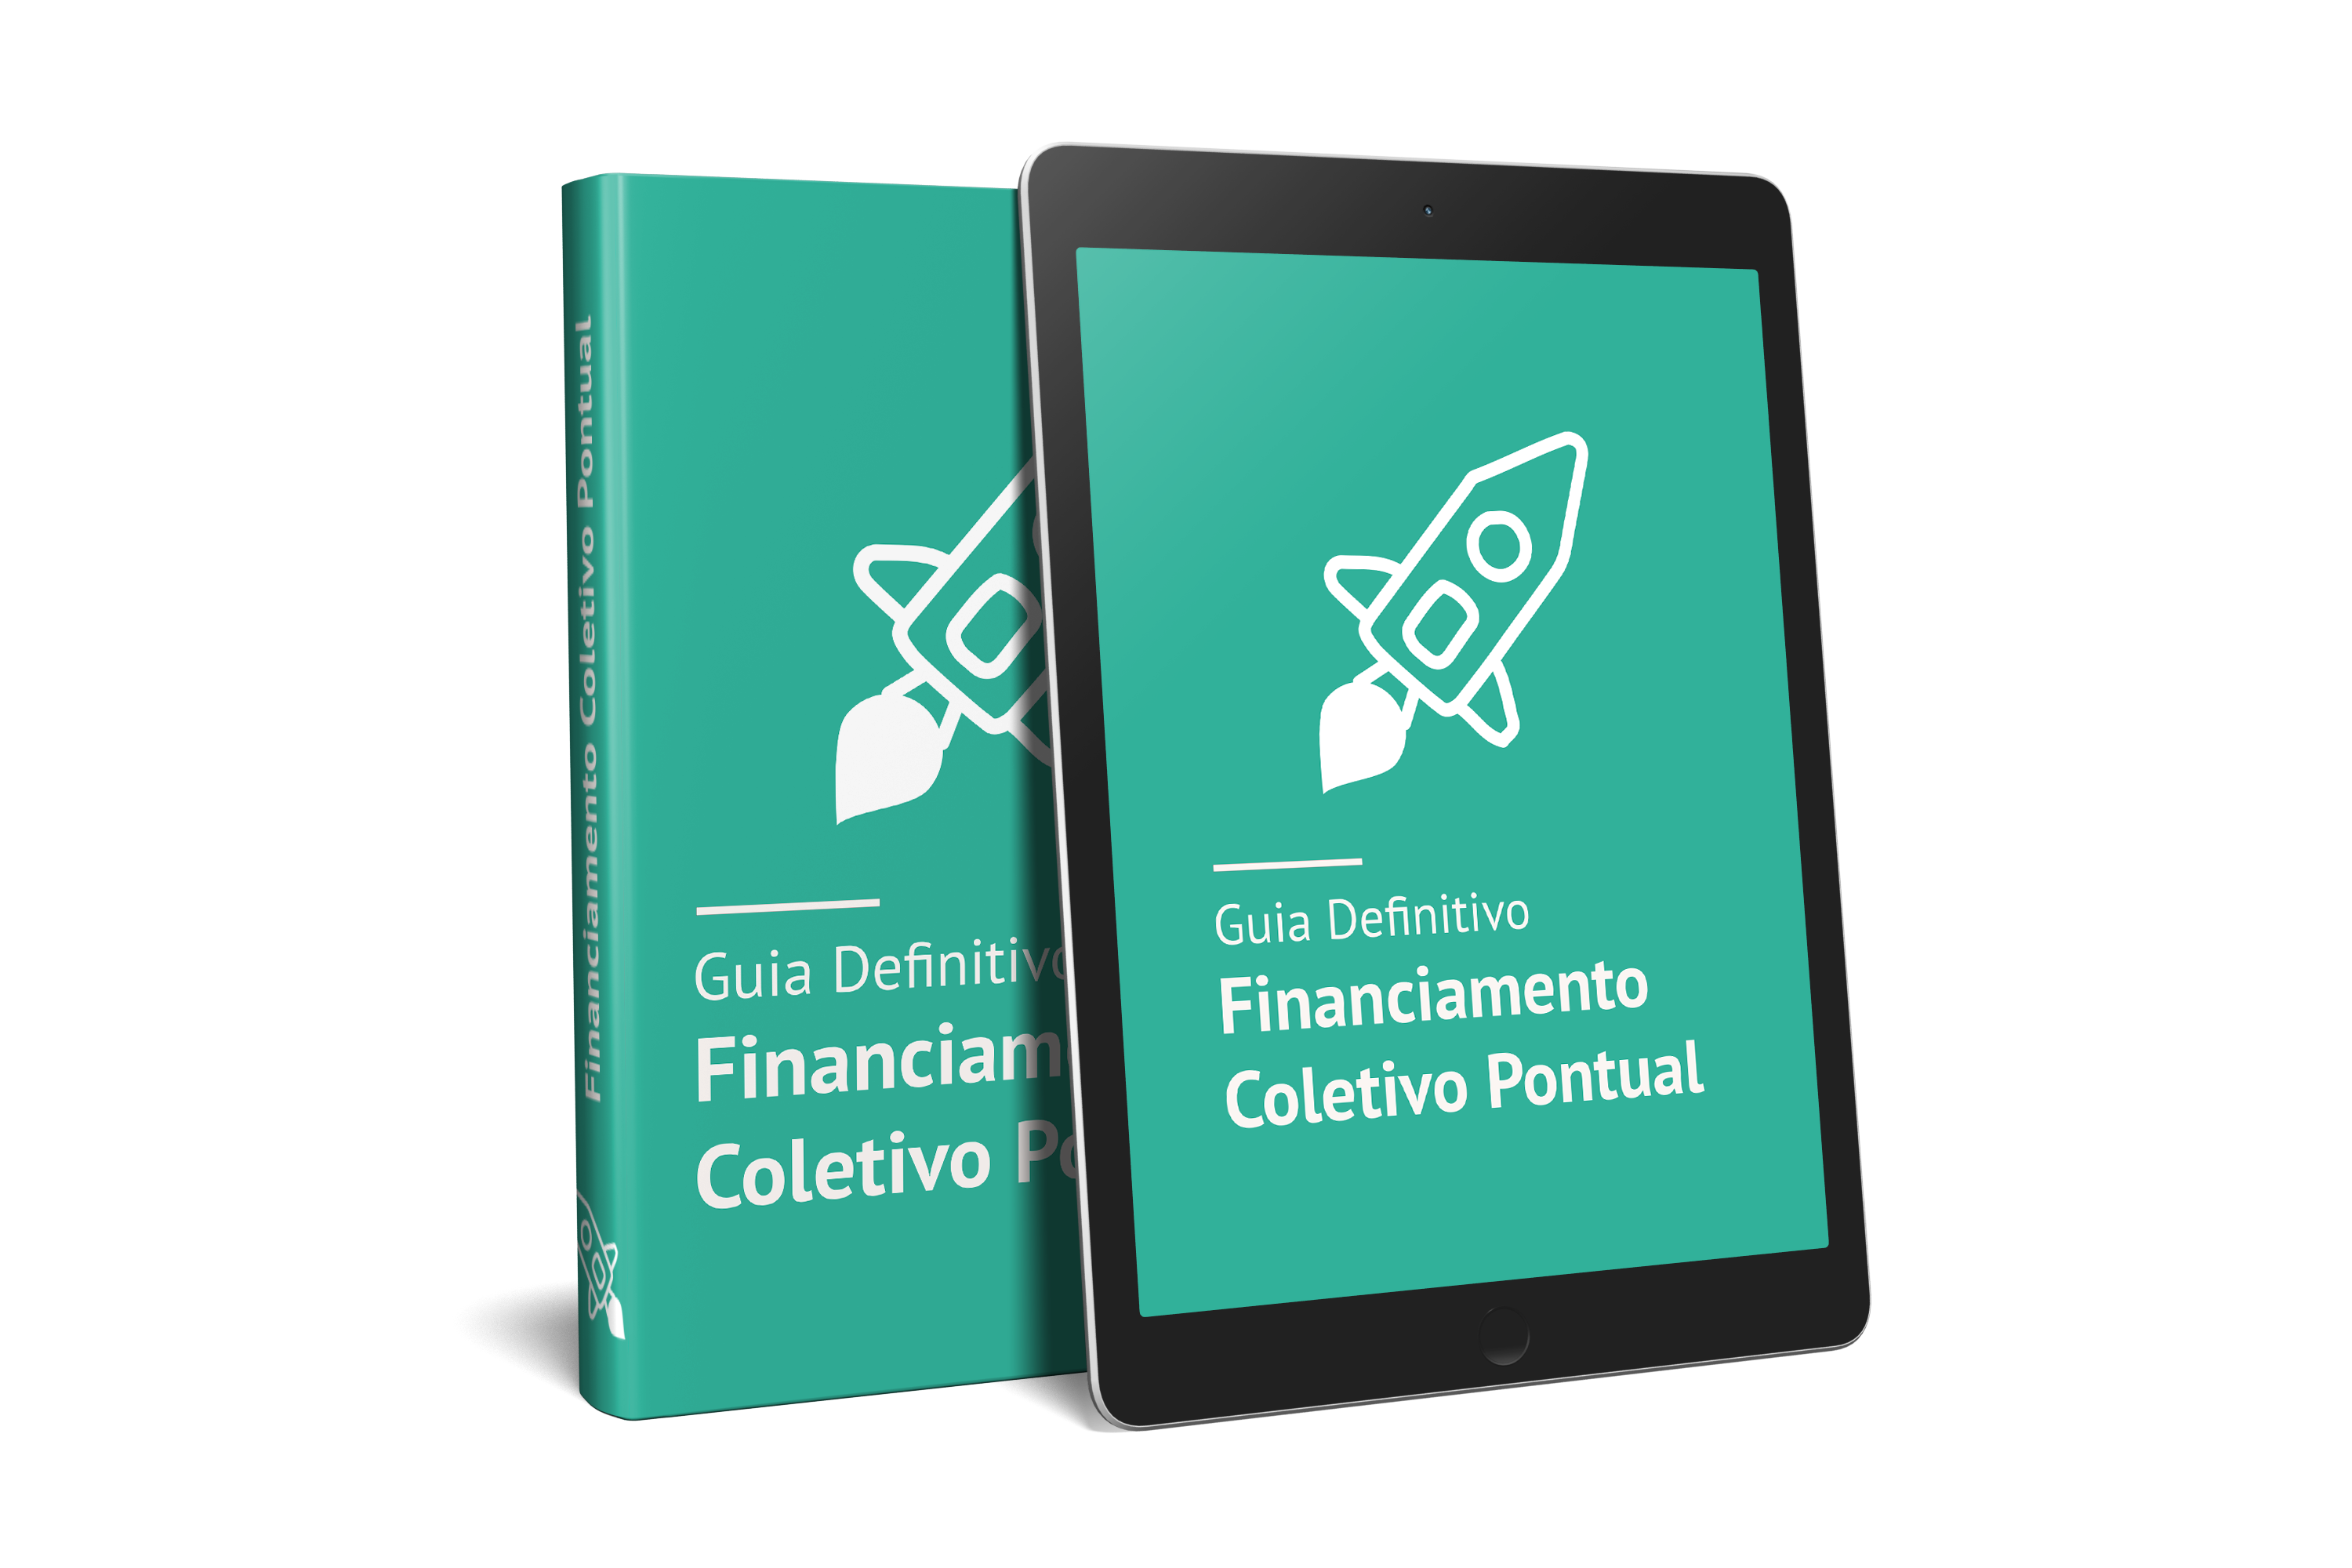 Guia Definitivo do Financiamento Coletivo Pontual